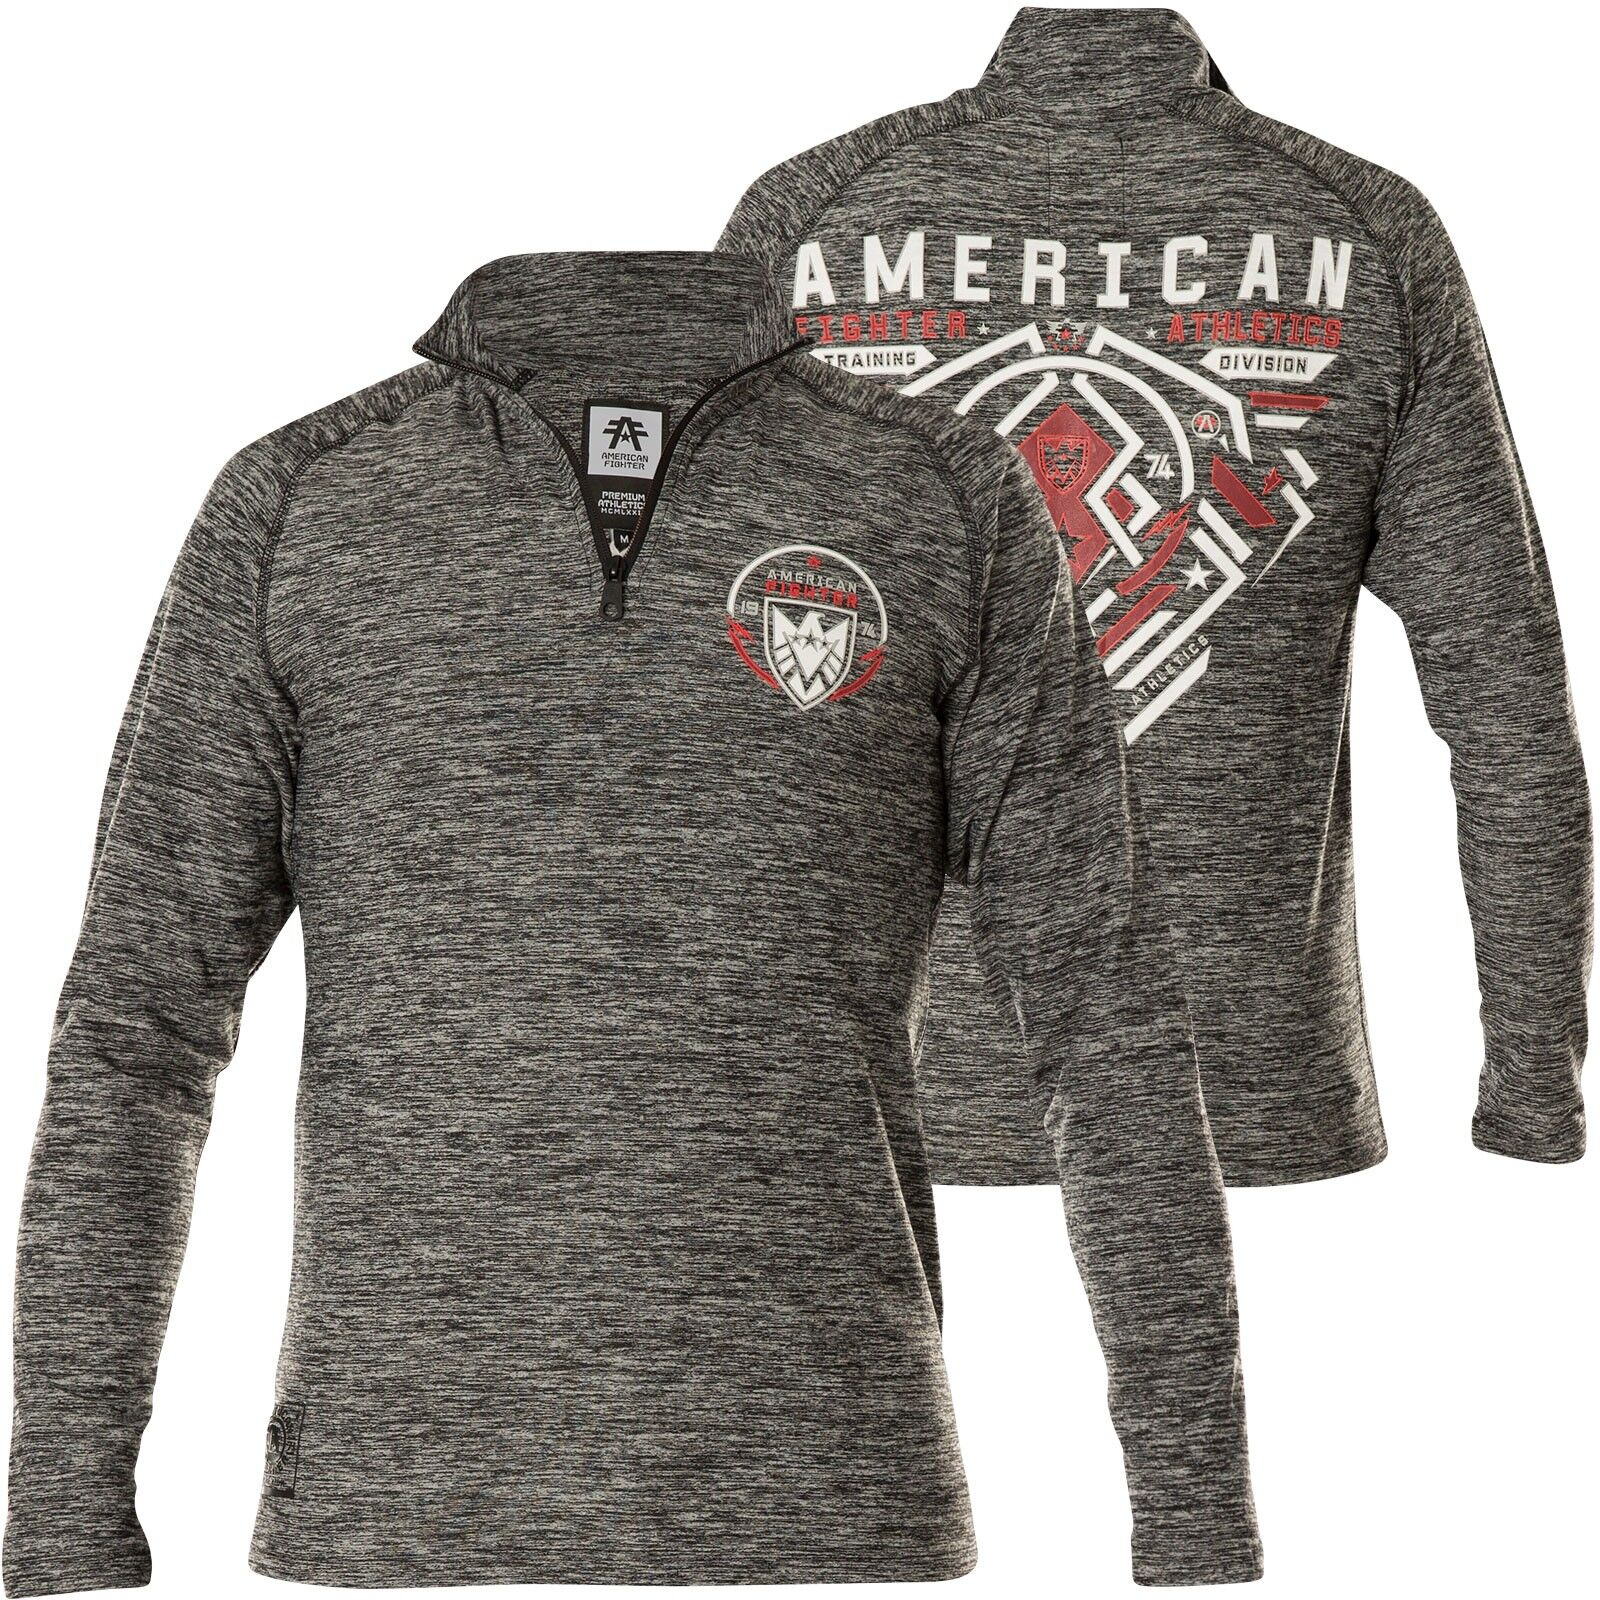 American Fighter by Affliction Thermal Brimley Grey